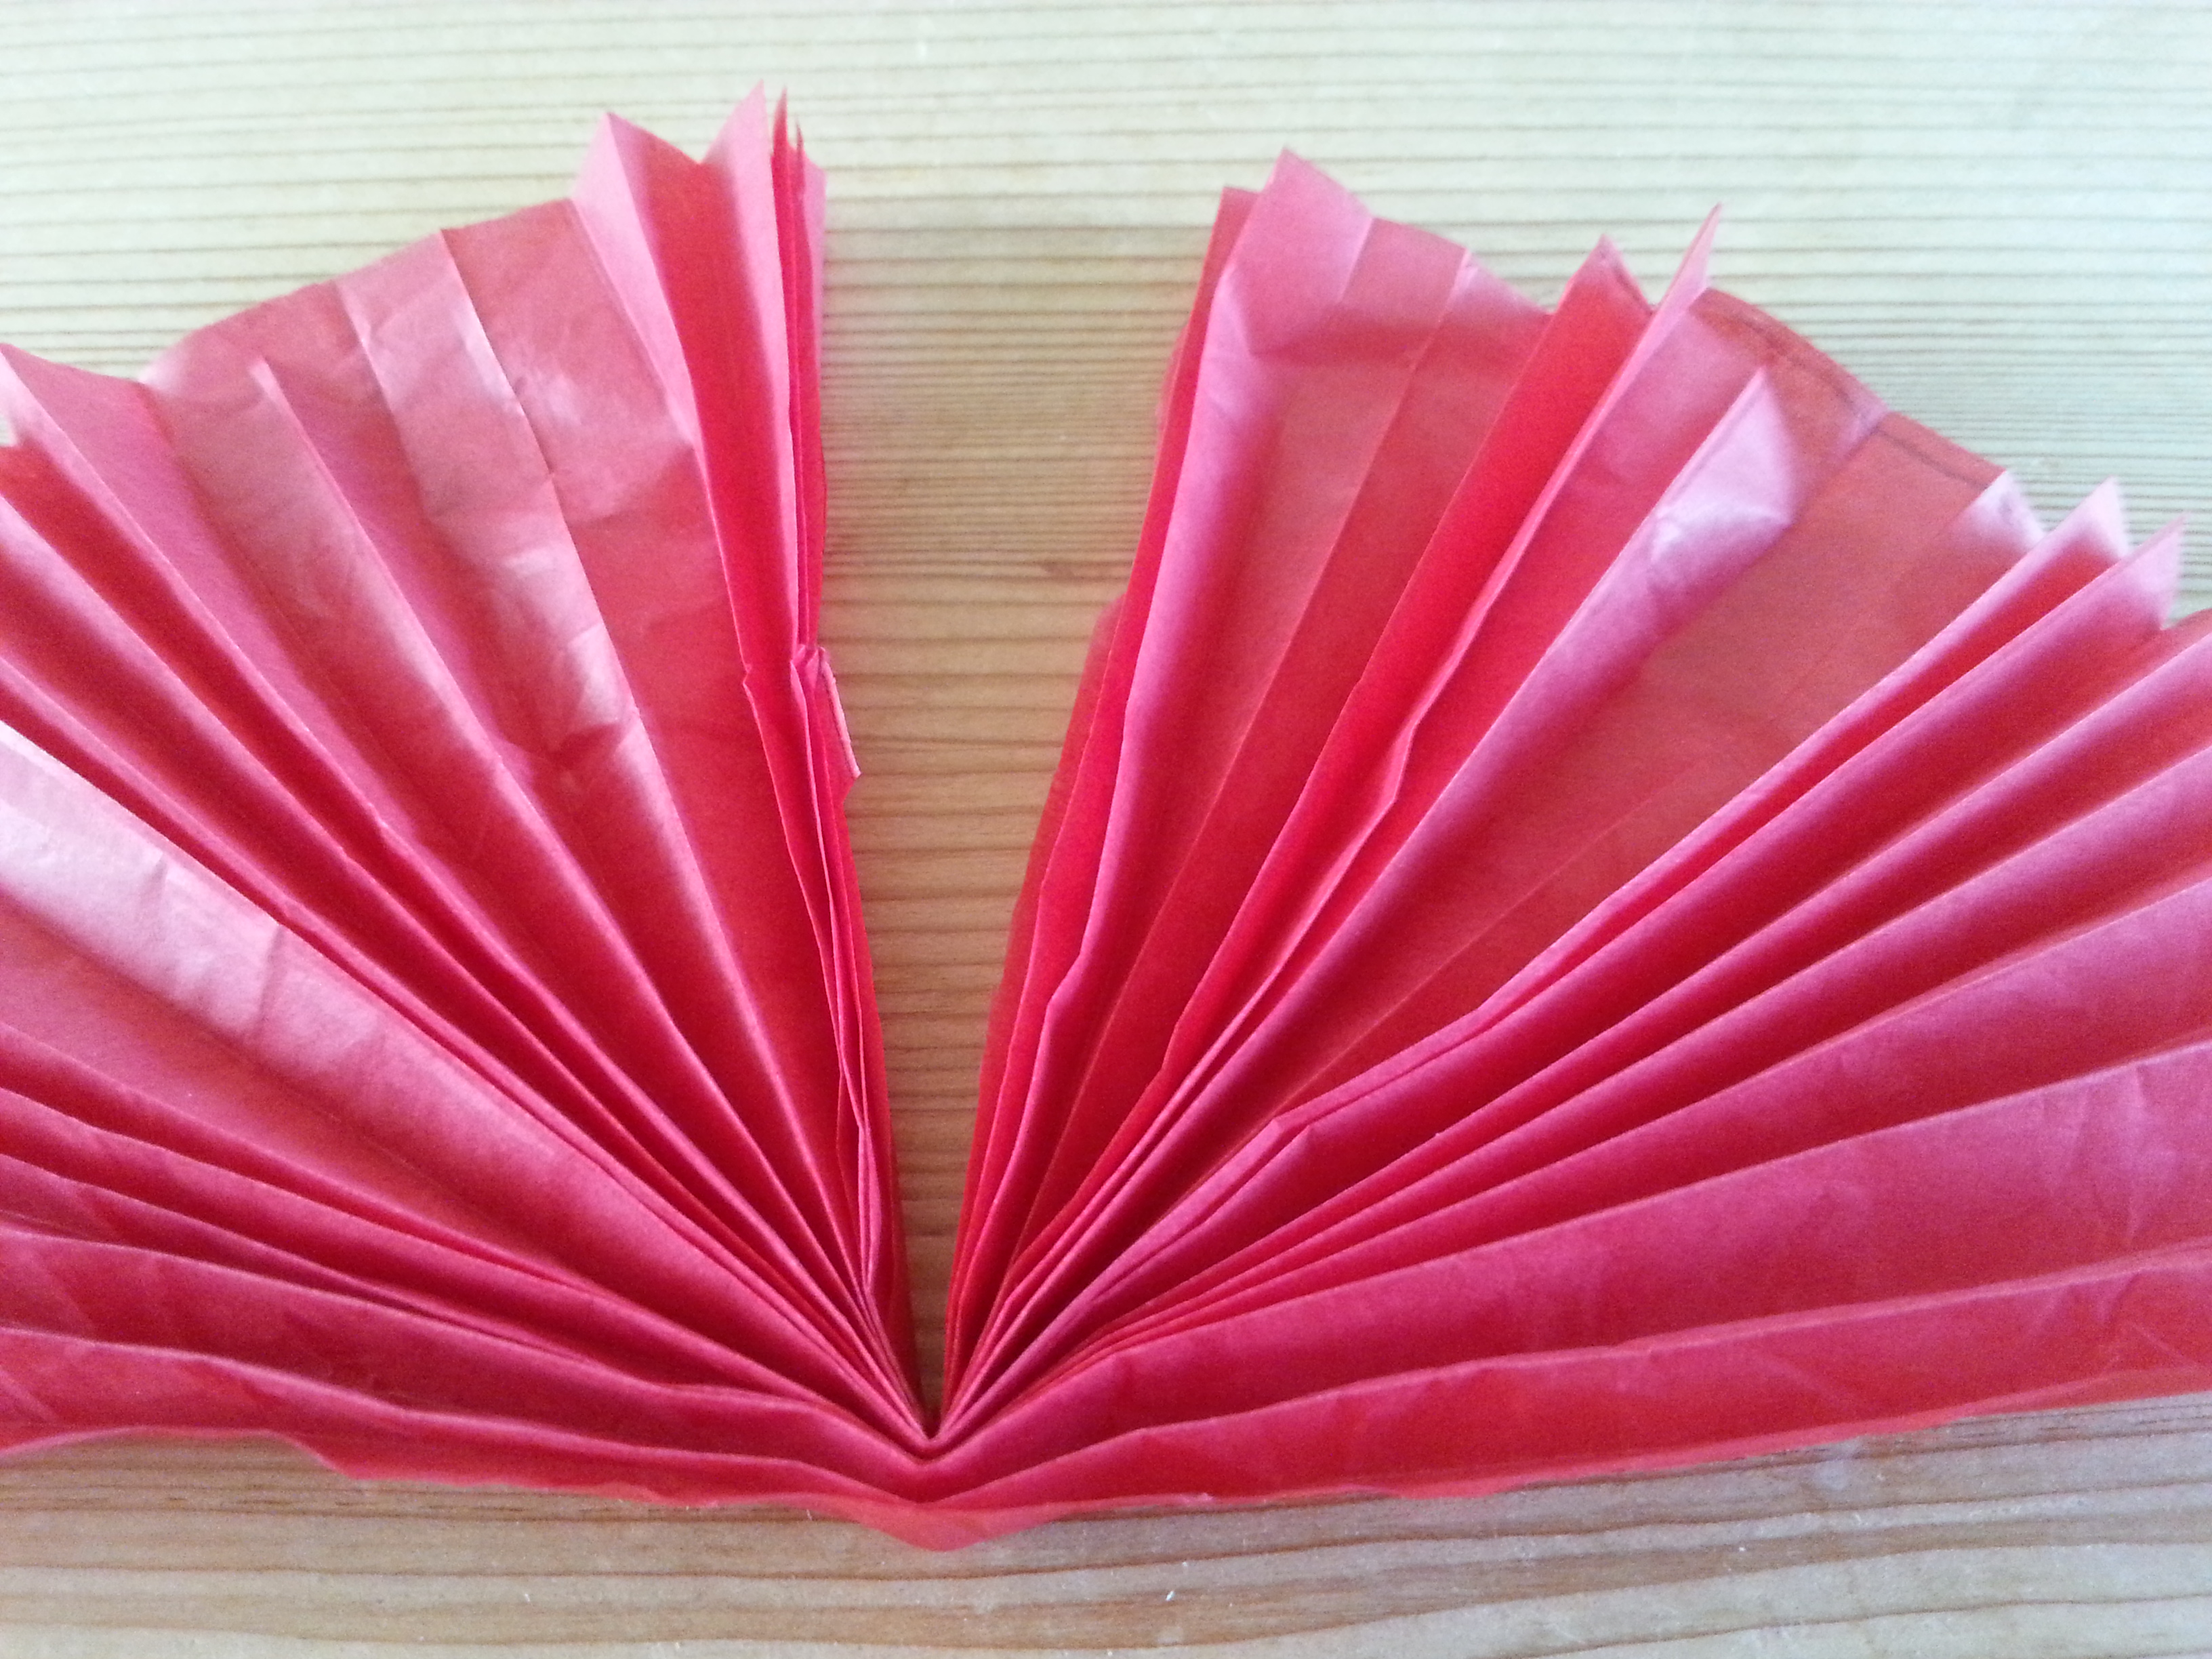 Assignment 1 - Folding & Crumpling